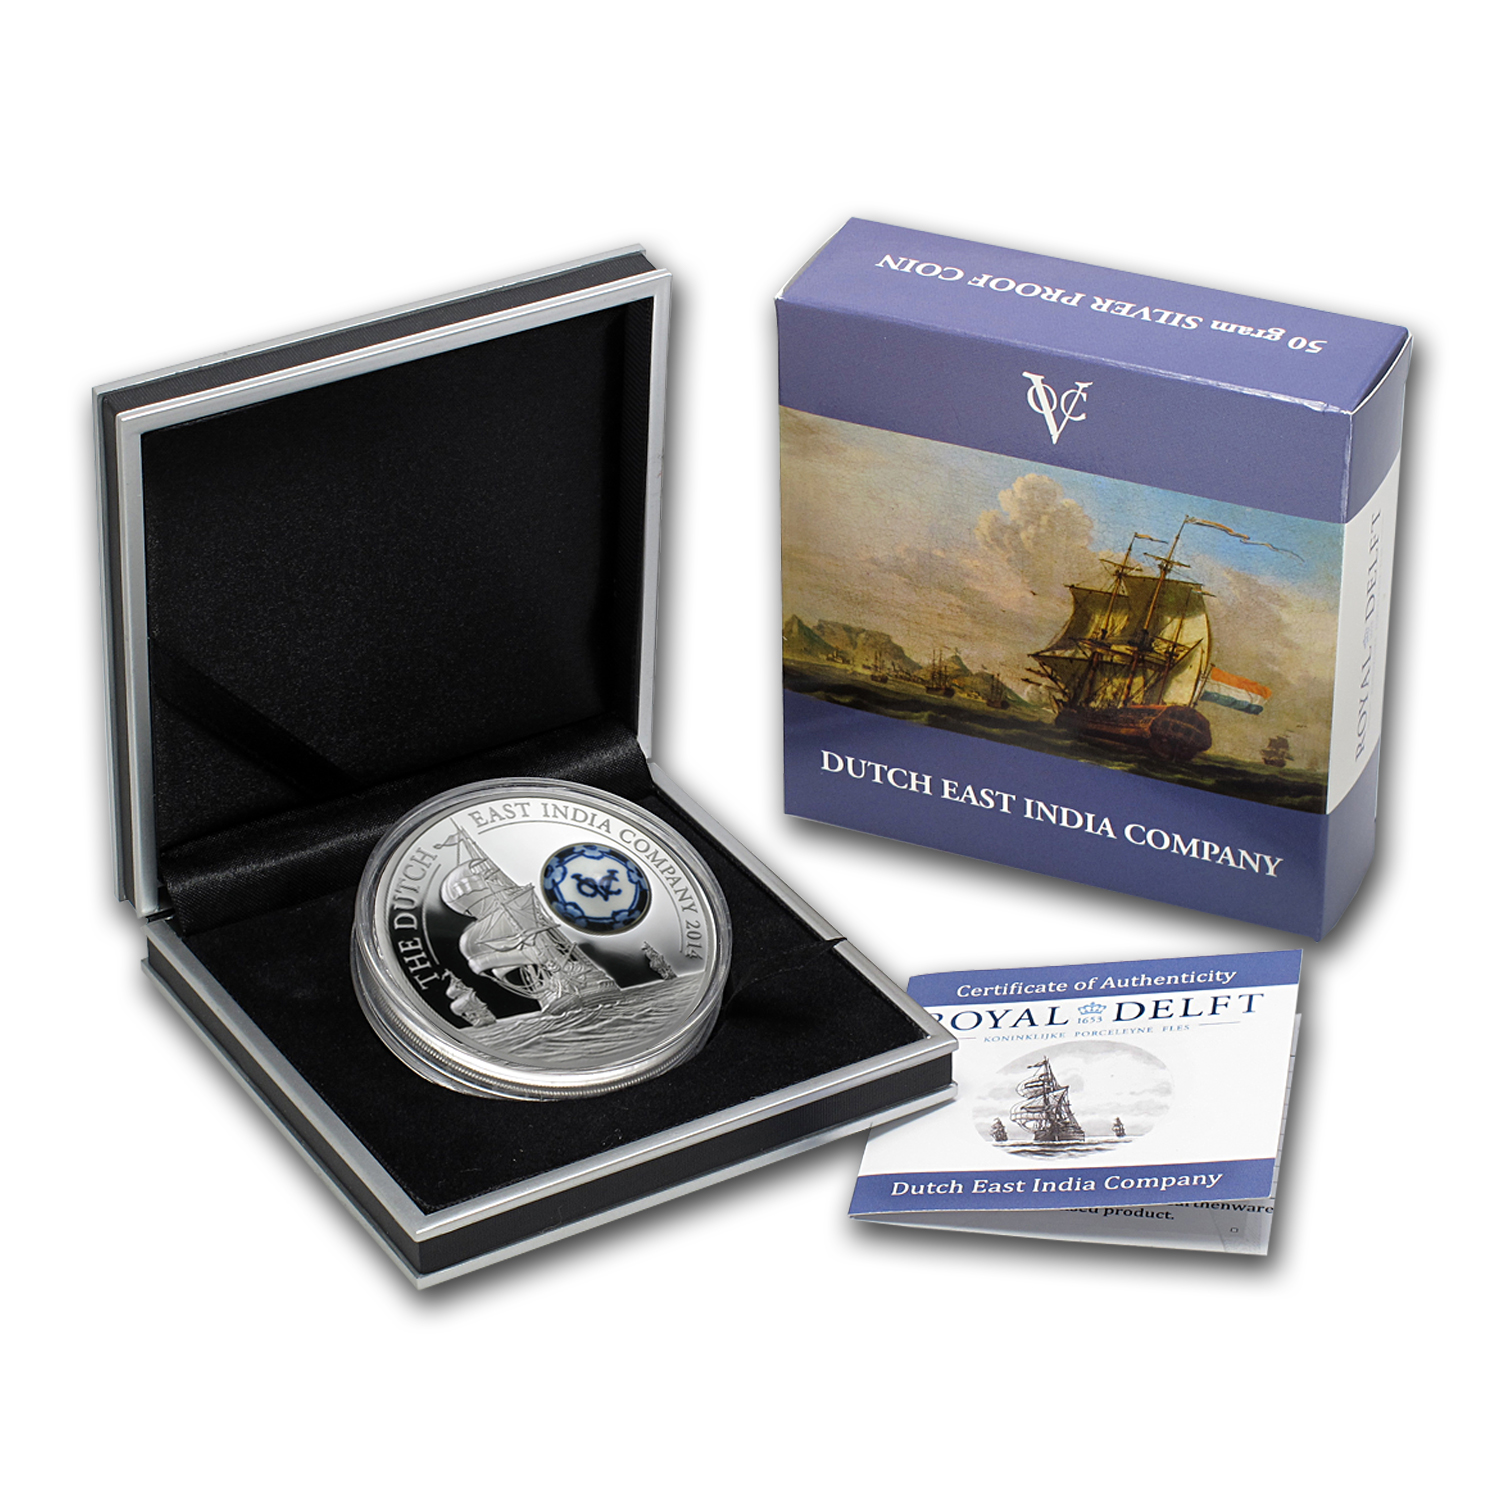 2014 Cook Islands Silver 50 gram Royal Delft™ VOC Ship